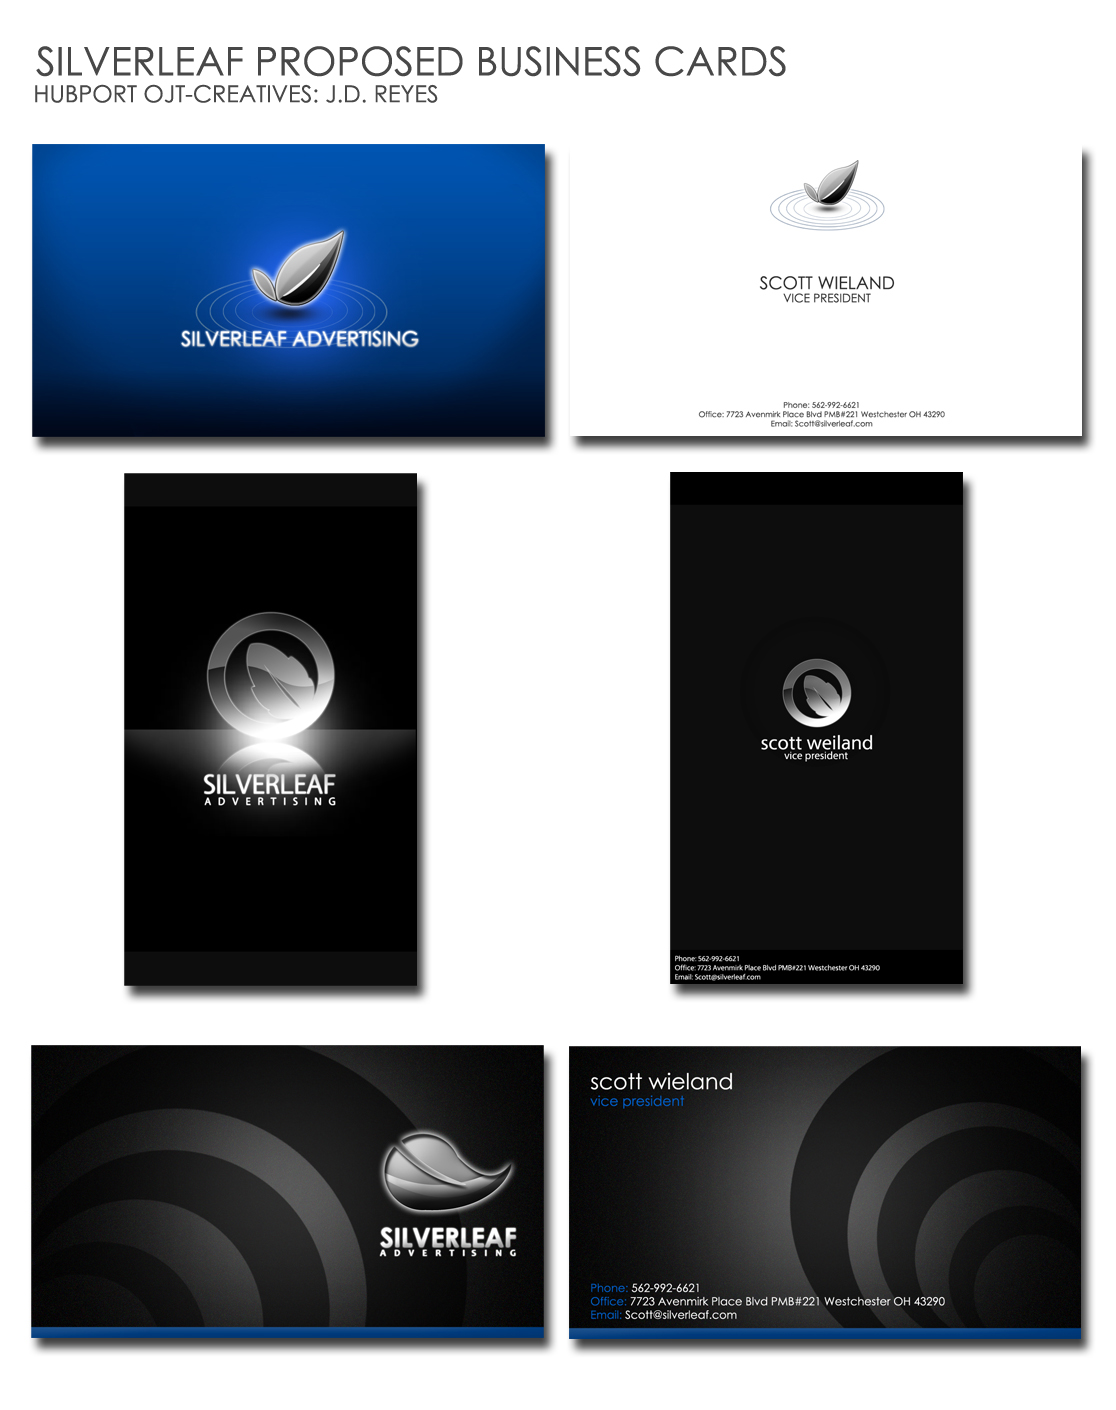 Ojt silverleaf business cards by jedskie on deviantart for Silverleaf owner login